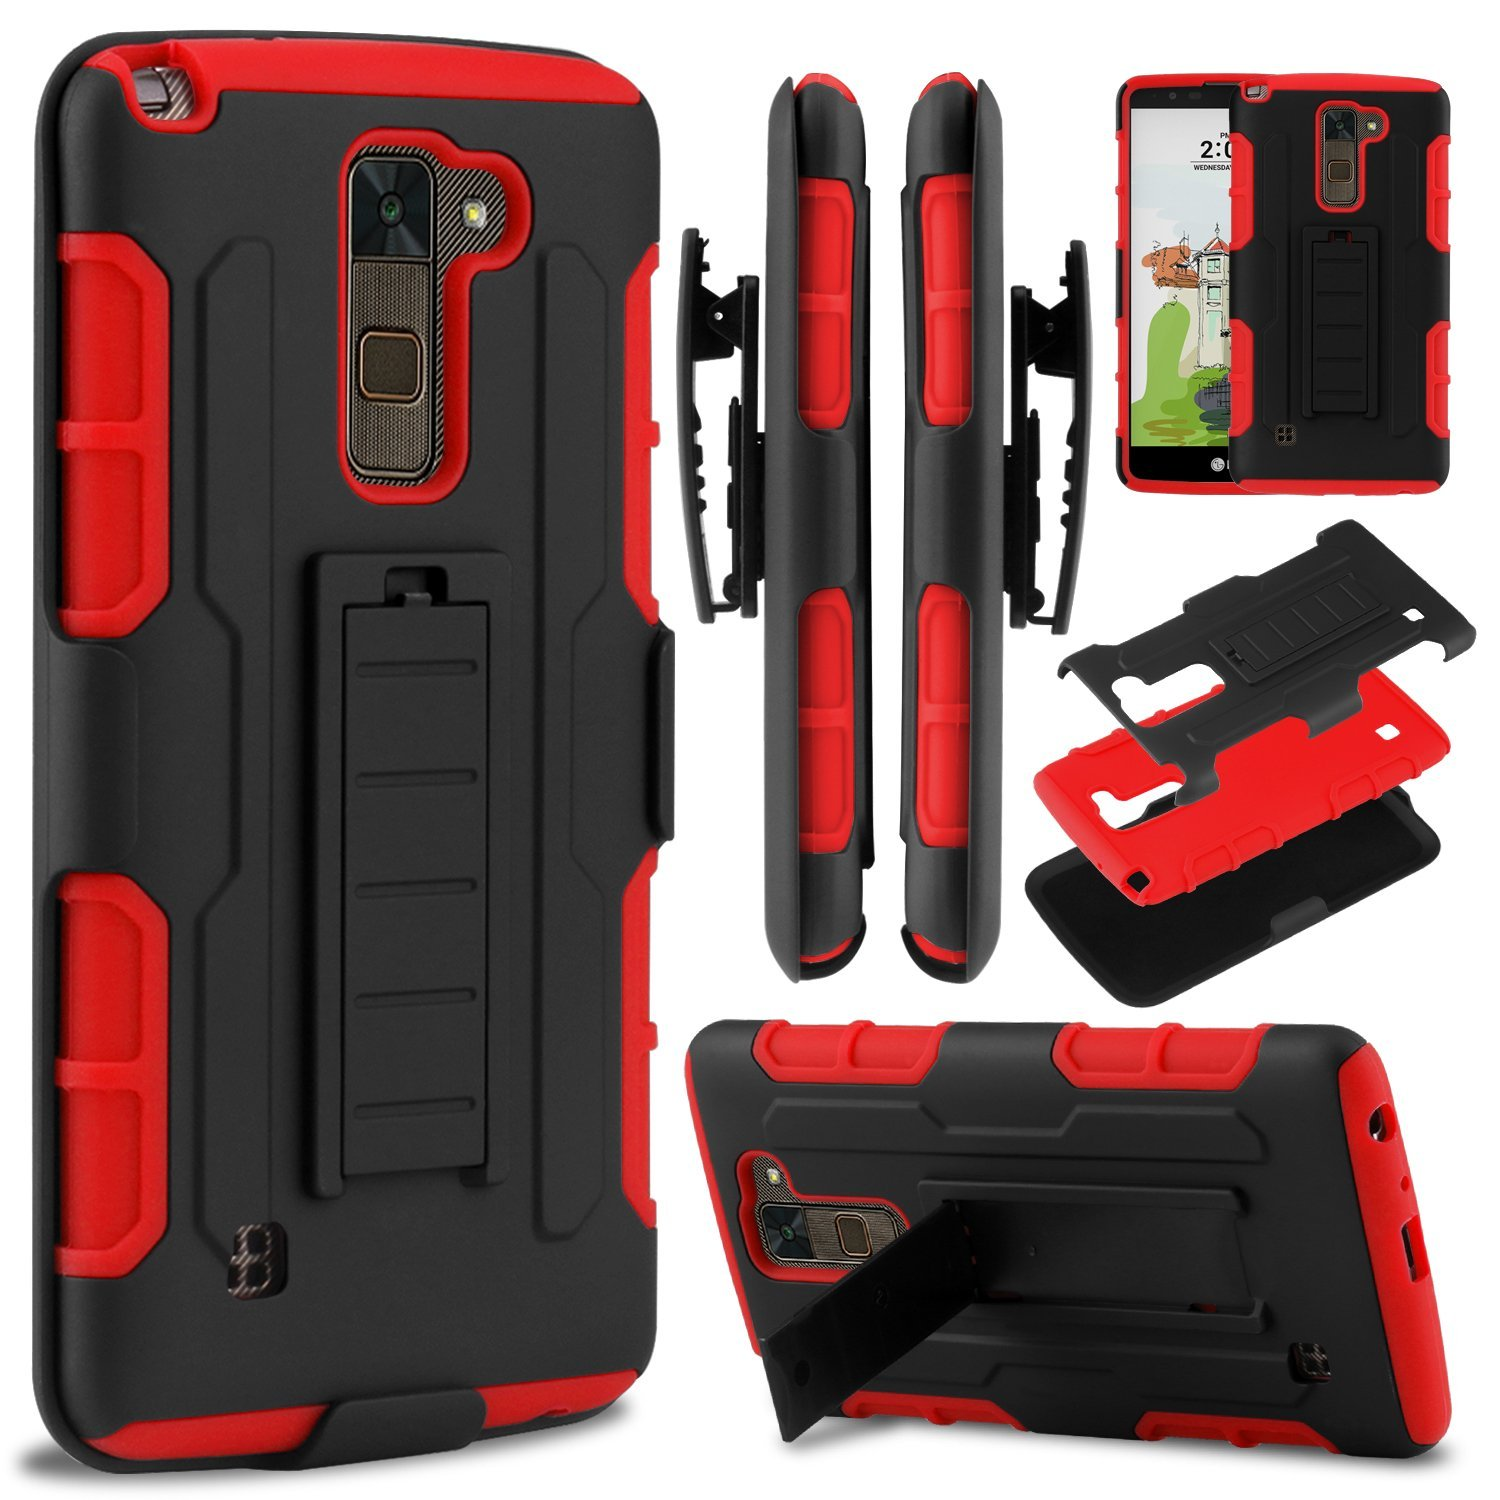 LG Stylo 2 Plus Case, LG Stylus 2 Plus Case, ELEGANT CHOISE Heavy Duty Dual Layer Rugged Combo Holster Case Cover with Kickstand & Swivel Belt Clip for LG G Stylo 2 Plus / LG Stylus 2 Plus (Red)